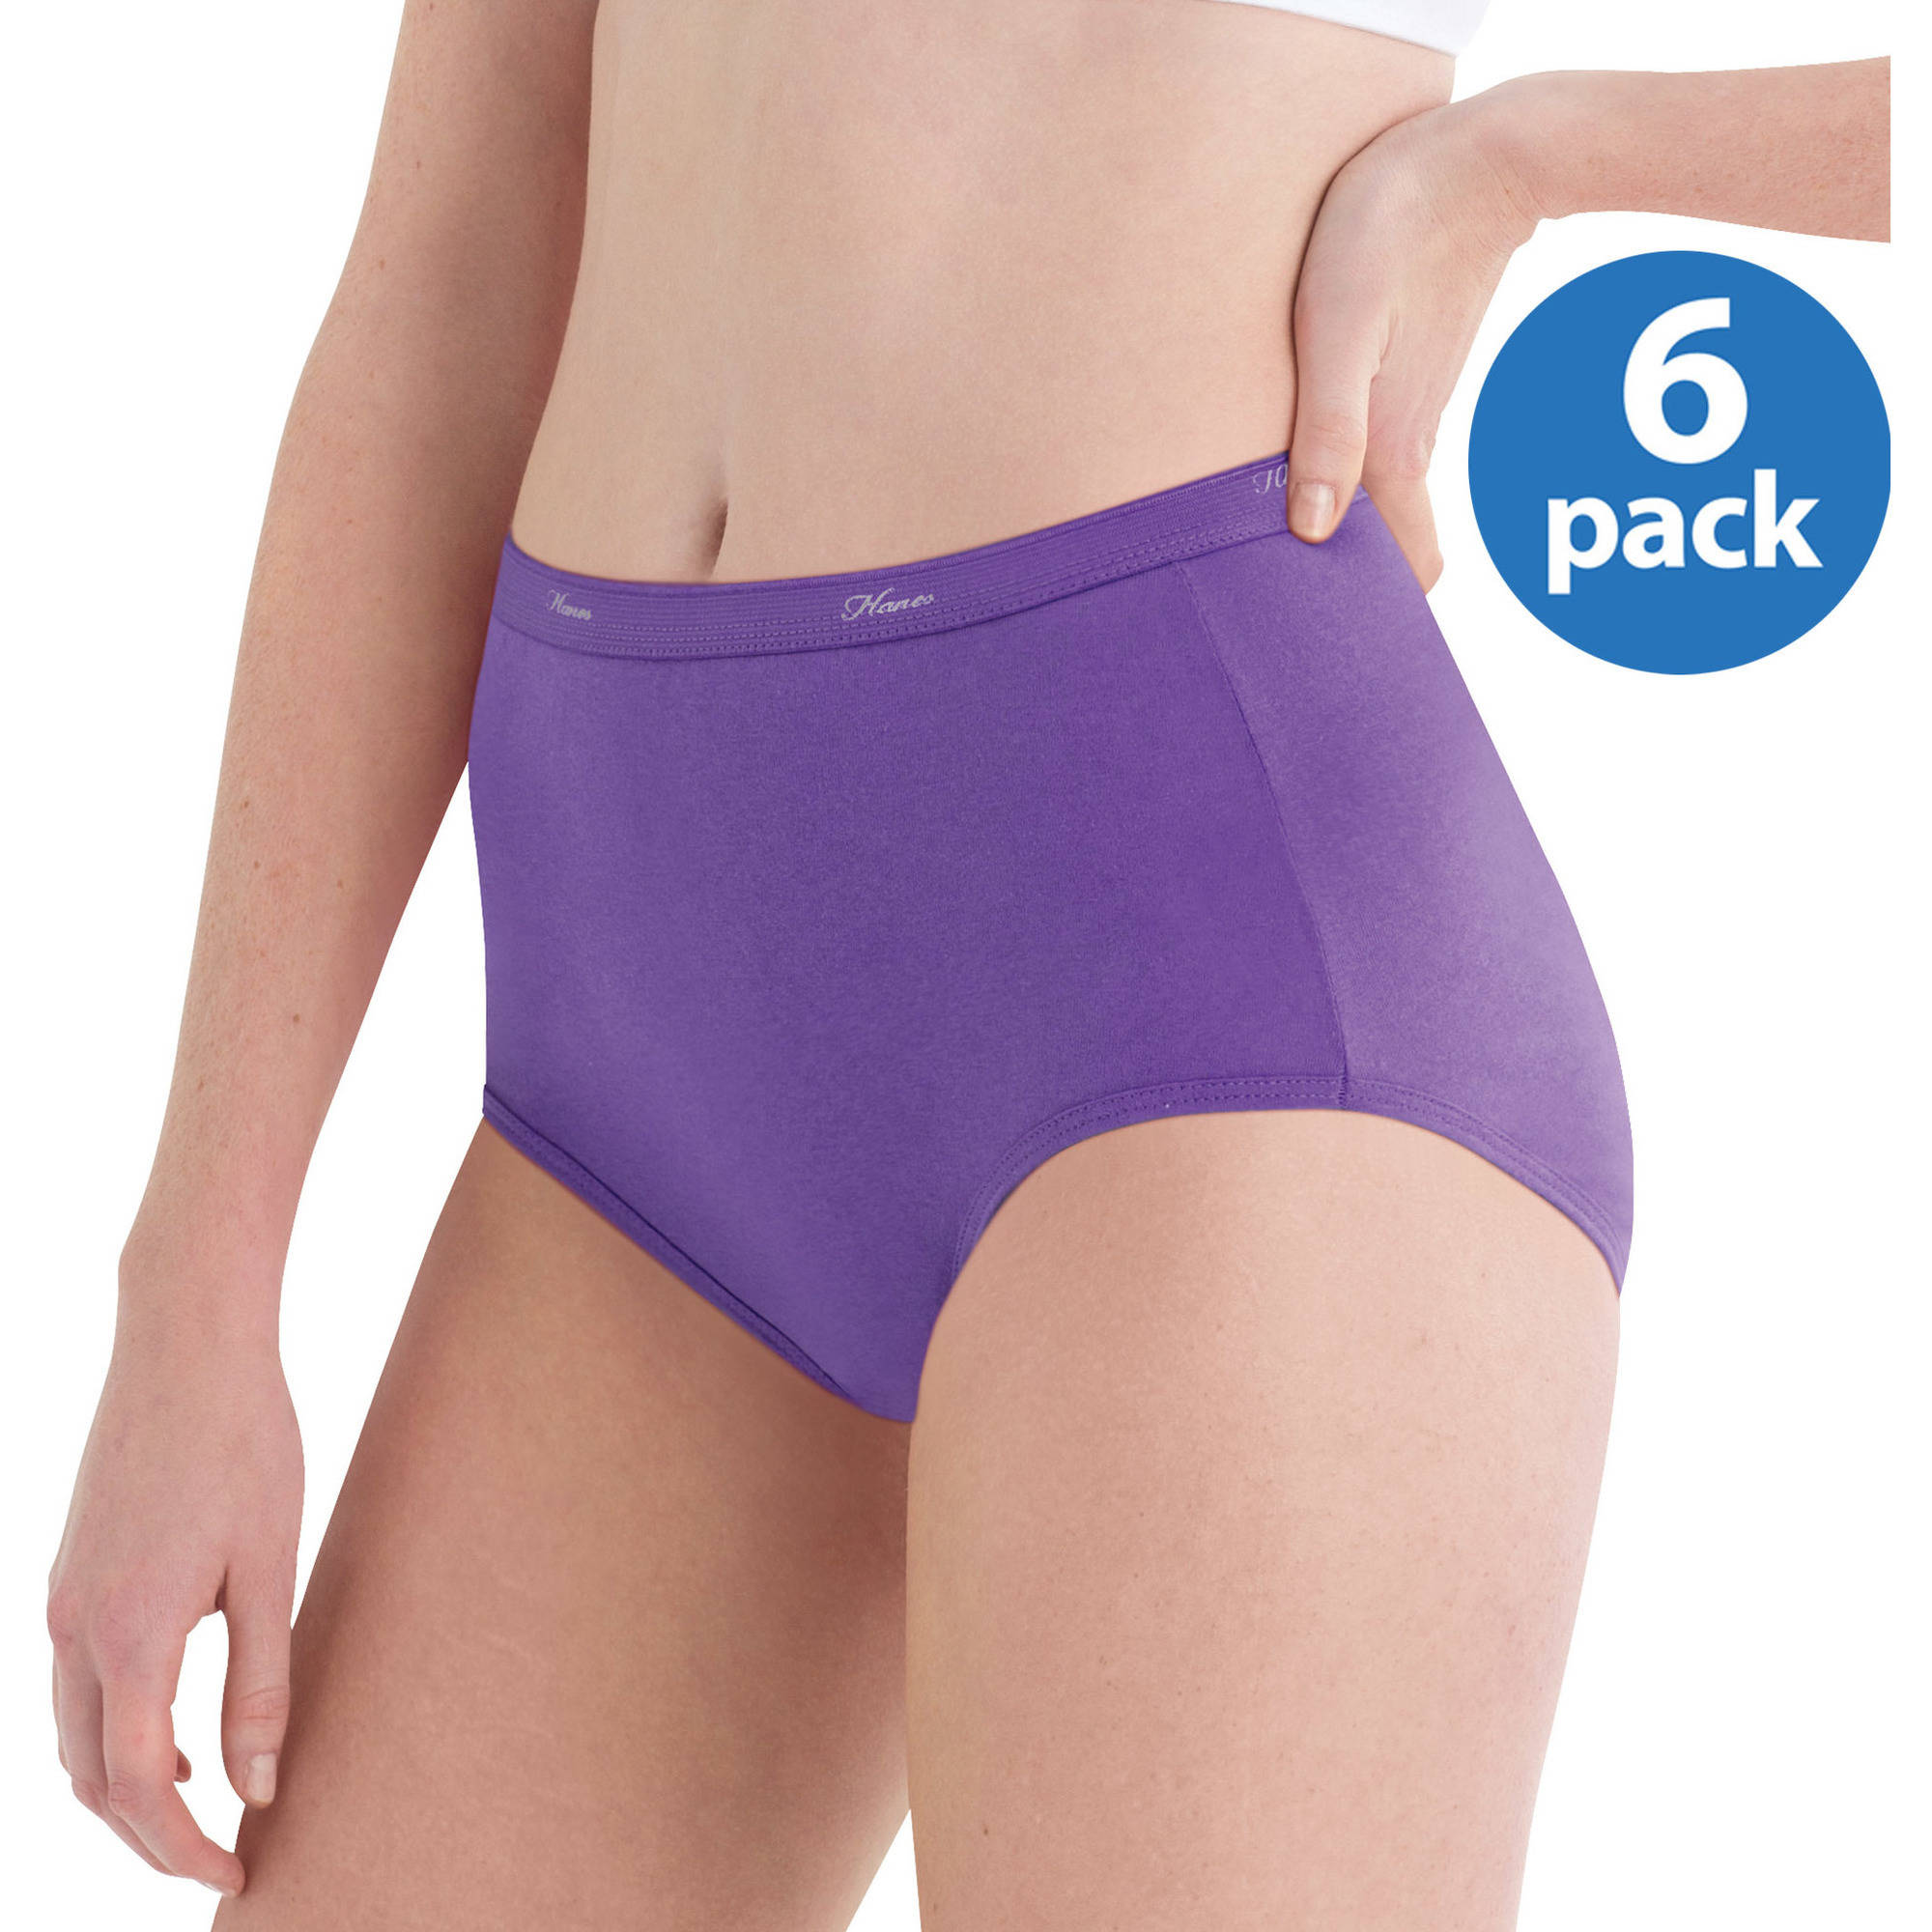 Hanes Women's Her Way Cotton Briefs 6 Pack